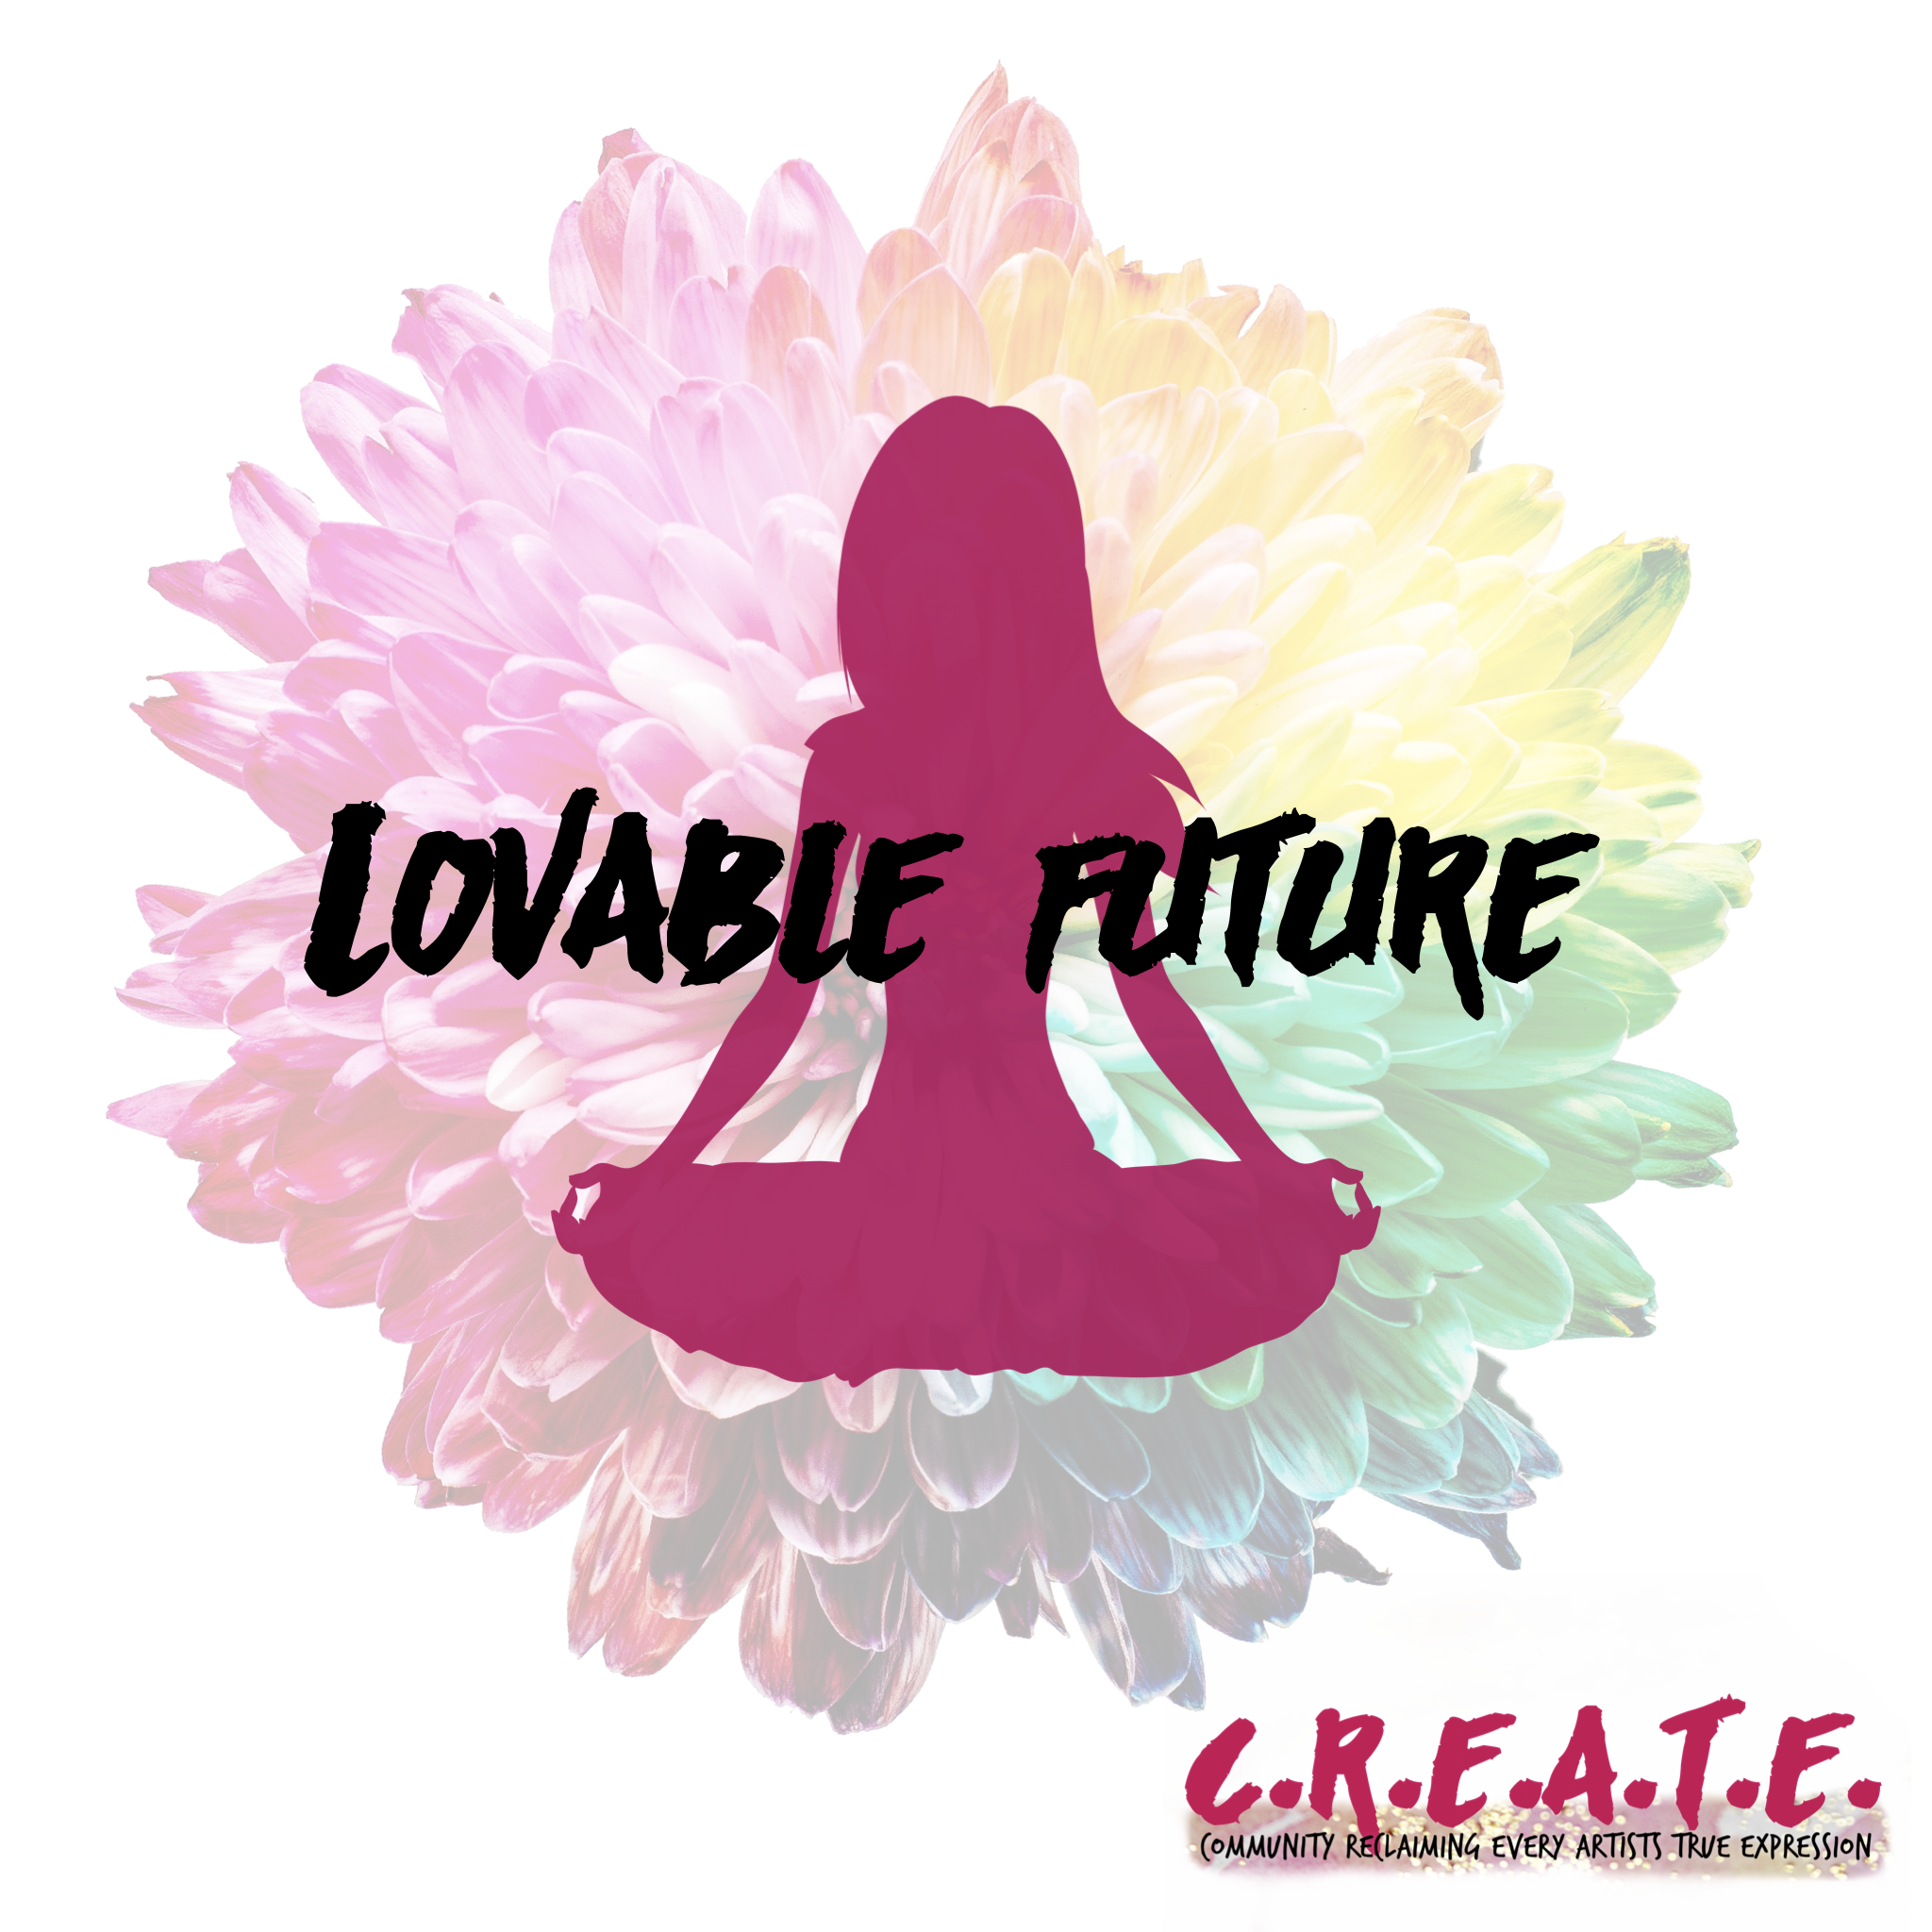 Lovable Future - $1.99 - Click Image To Purchase!